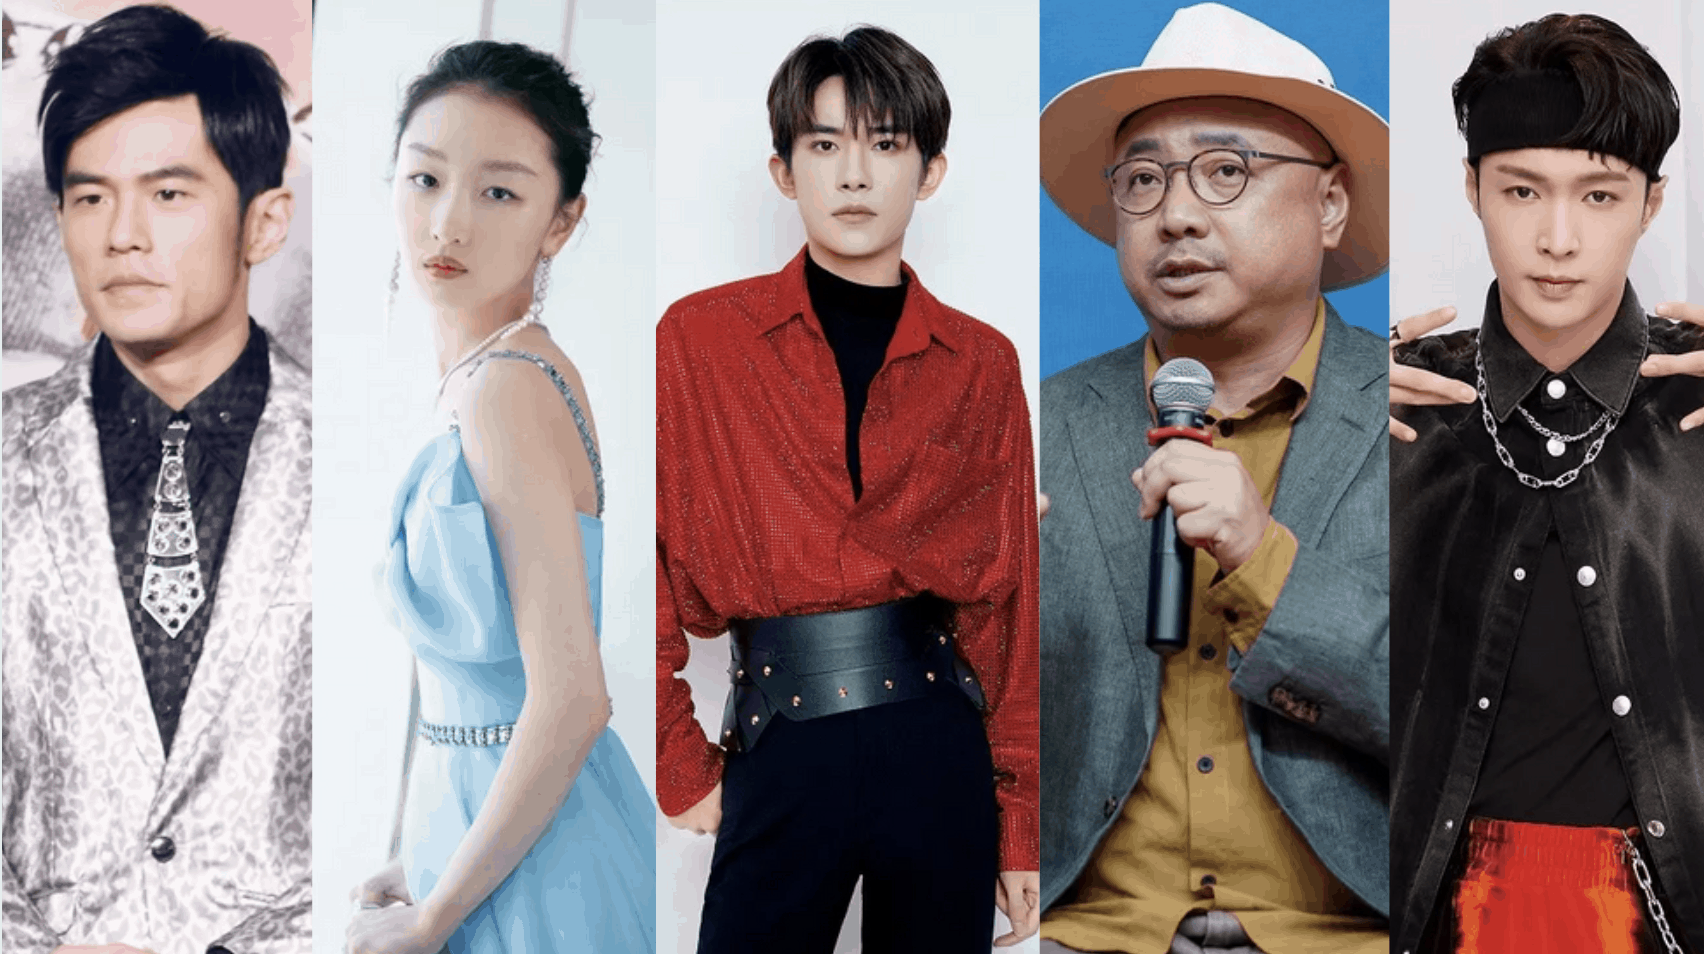 Forbes China Release Their Top 100 Celebrities List For 2020